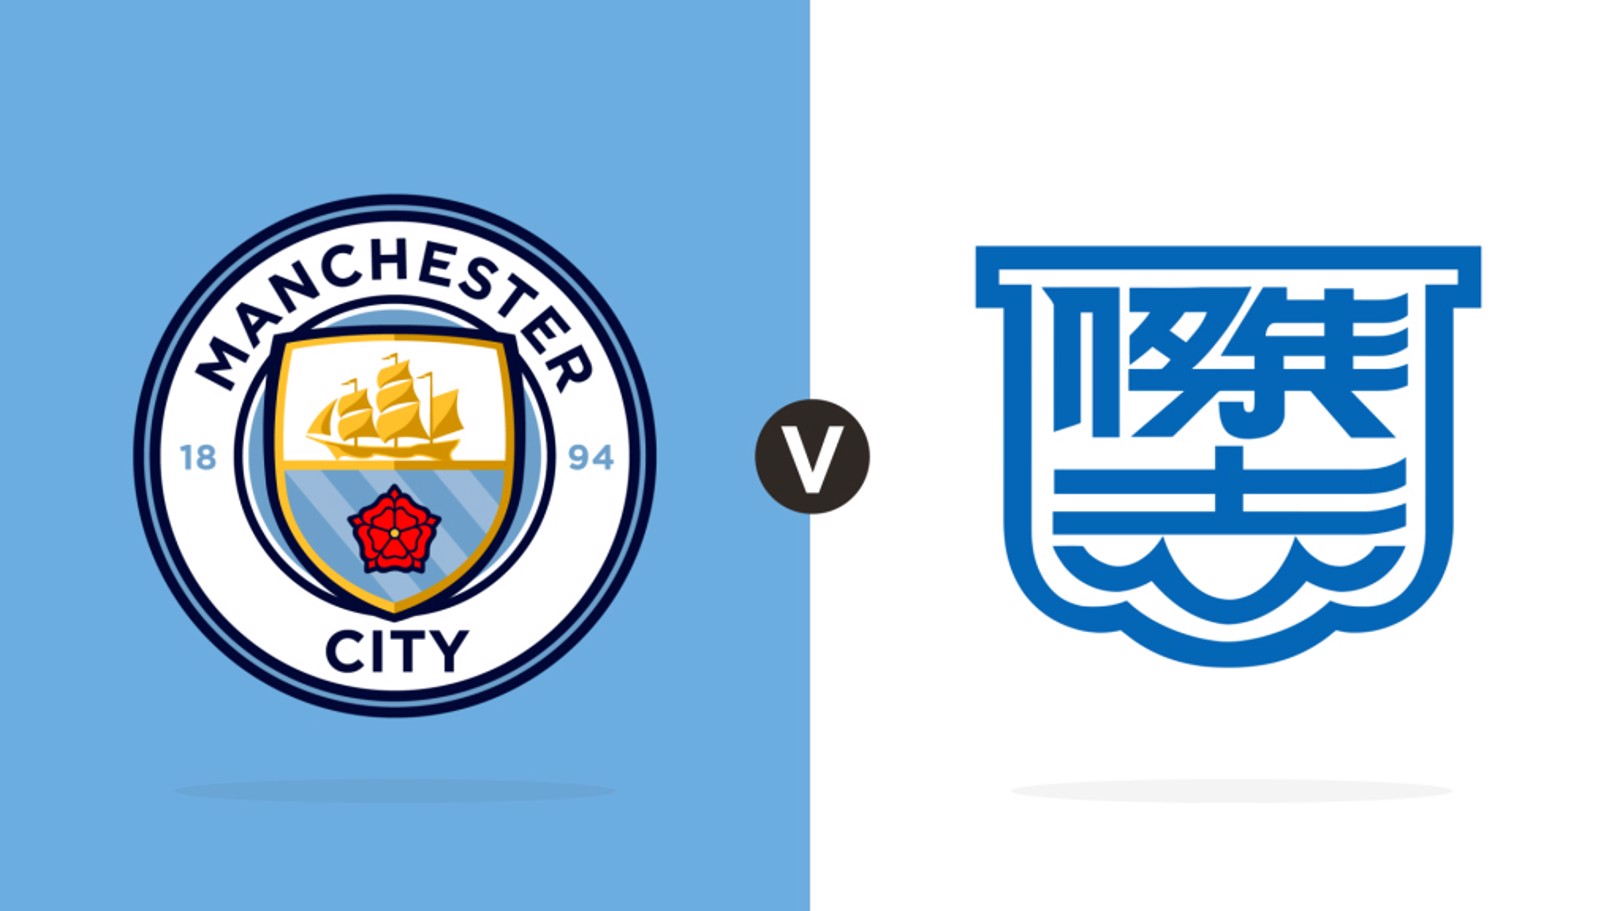 City crest v Kitchee crest